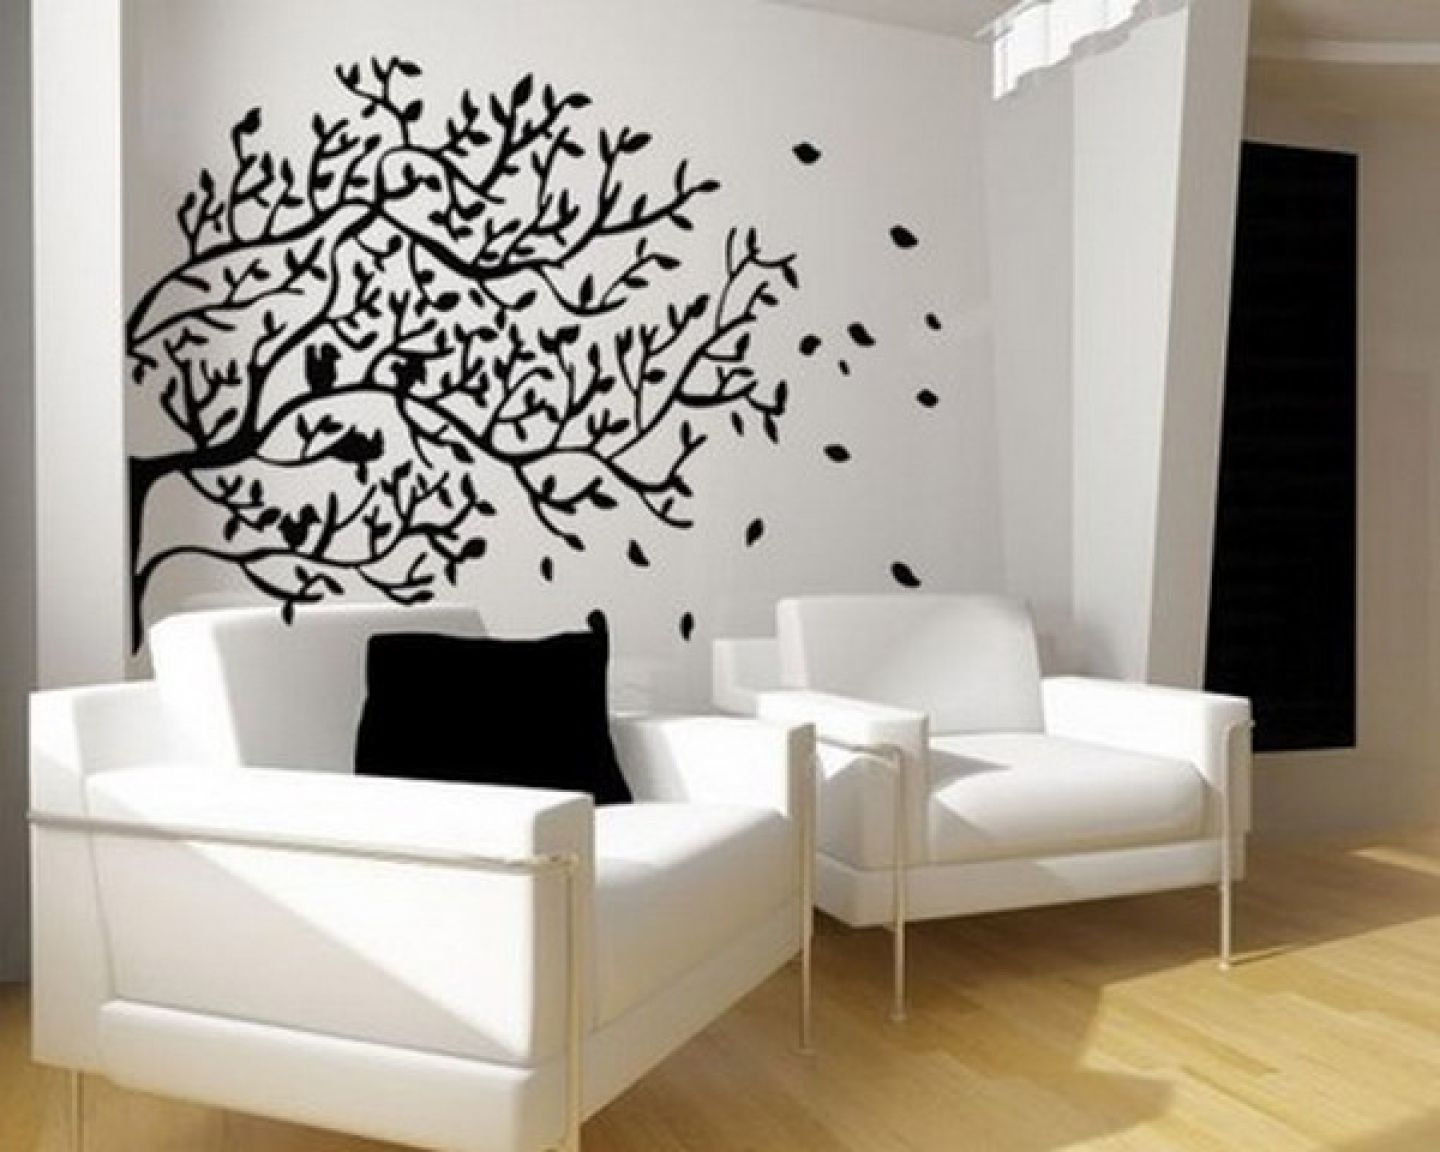 Living Room Wall Murals luxury living room tree wall murals sticker decorations image